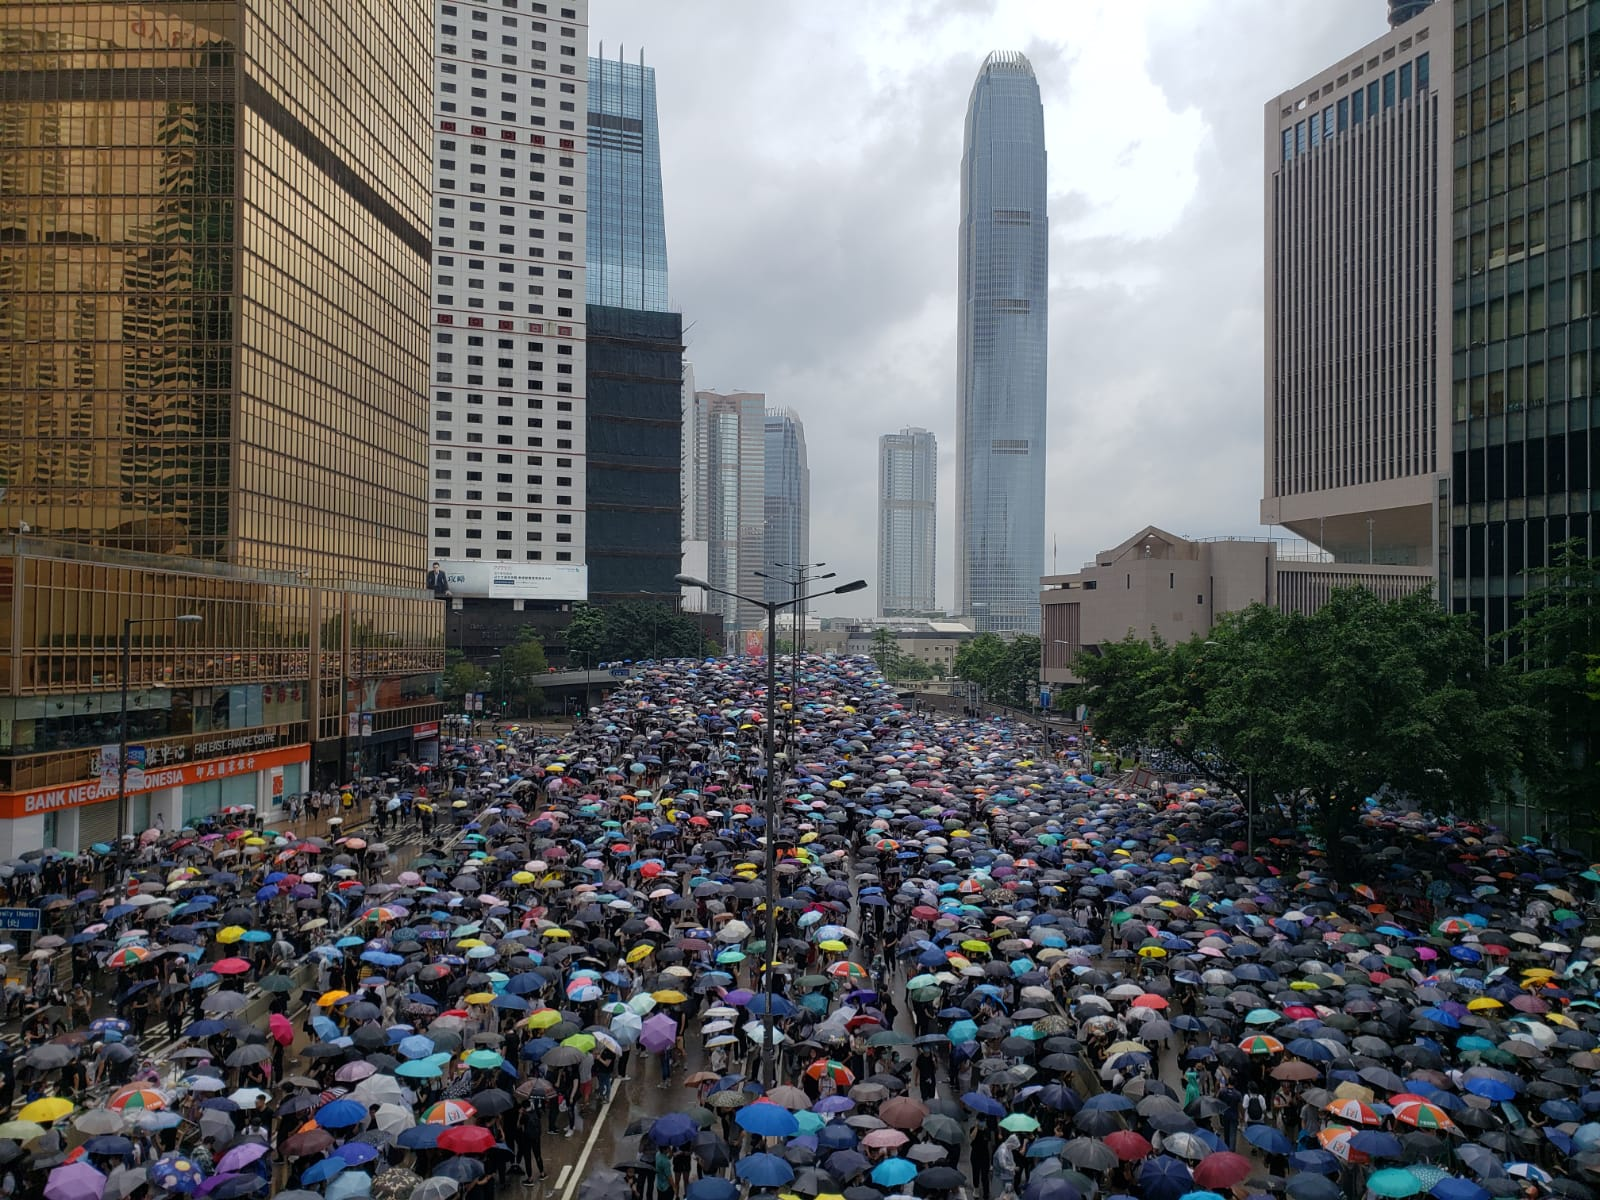 Protesters put up their umbrellas as rain falls in Hong Kong.